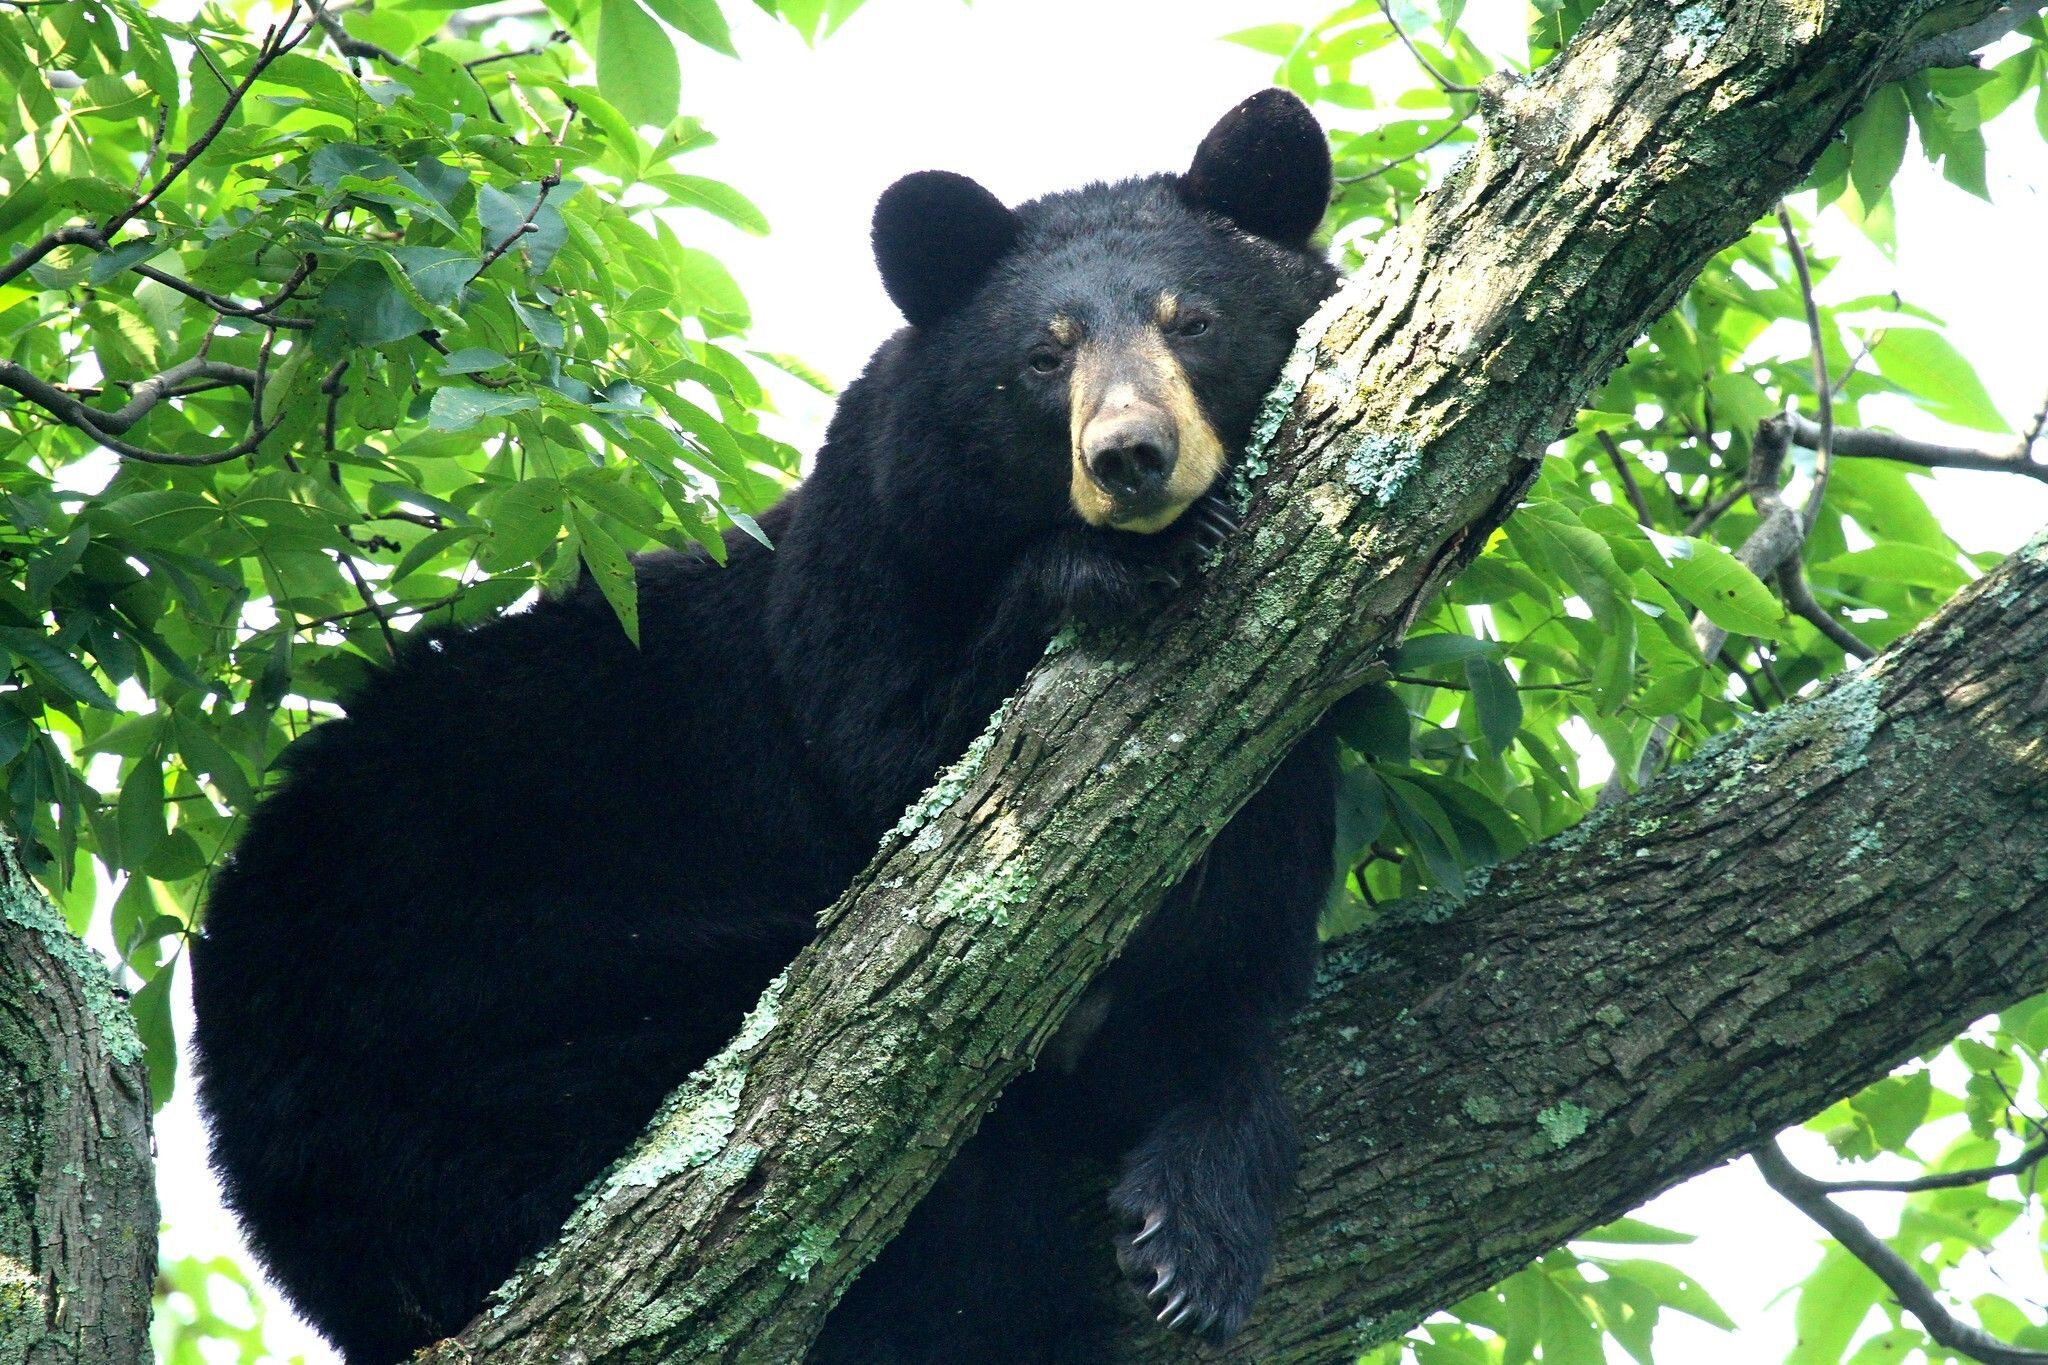 Black Bear in the trees